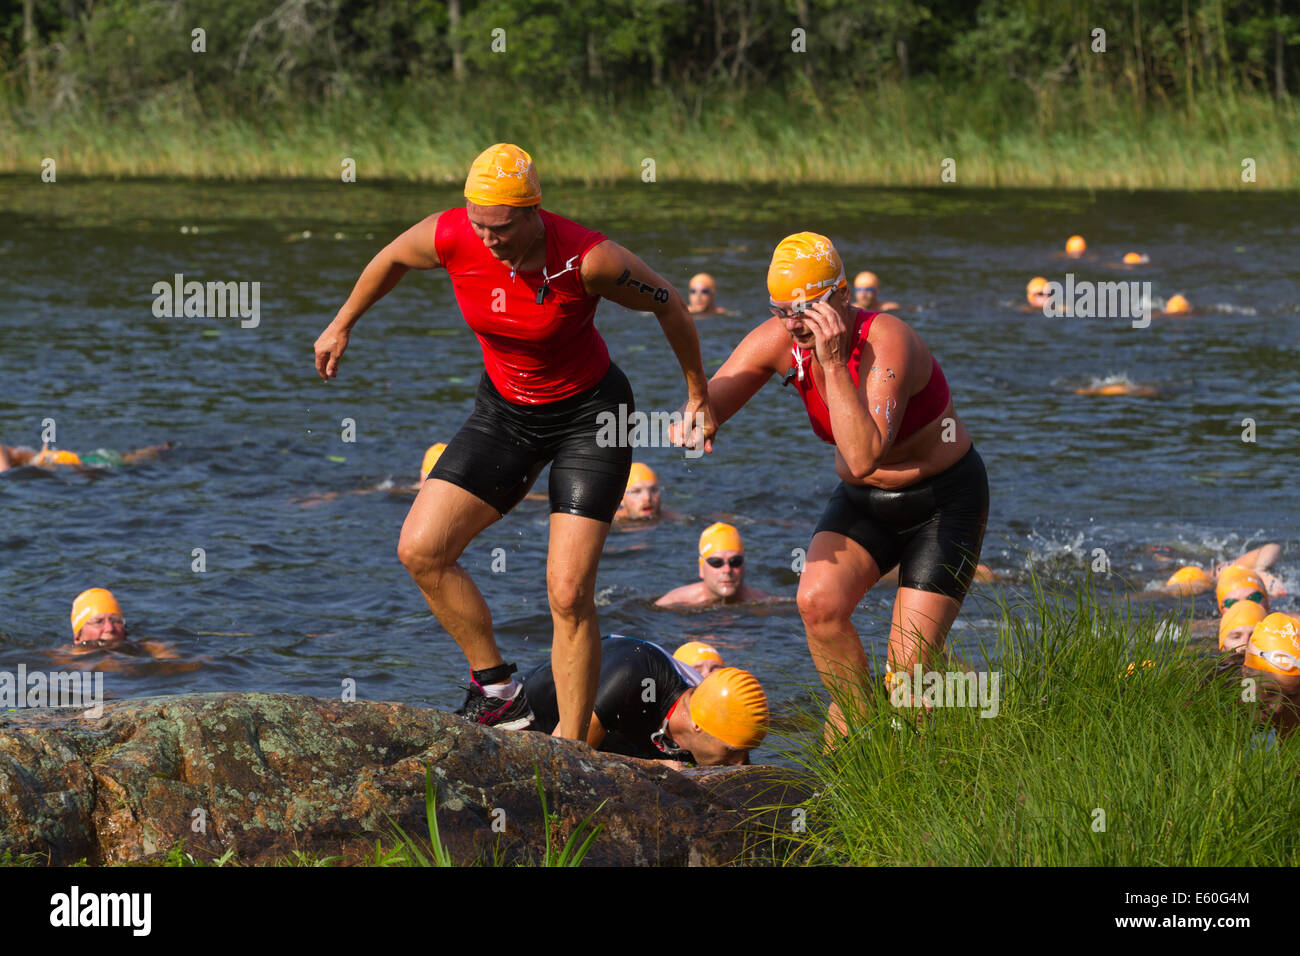 People competing in Ångaloppet, a swimrun competition where you run on land and swim in lakes and the sea several - Stock Image